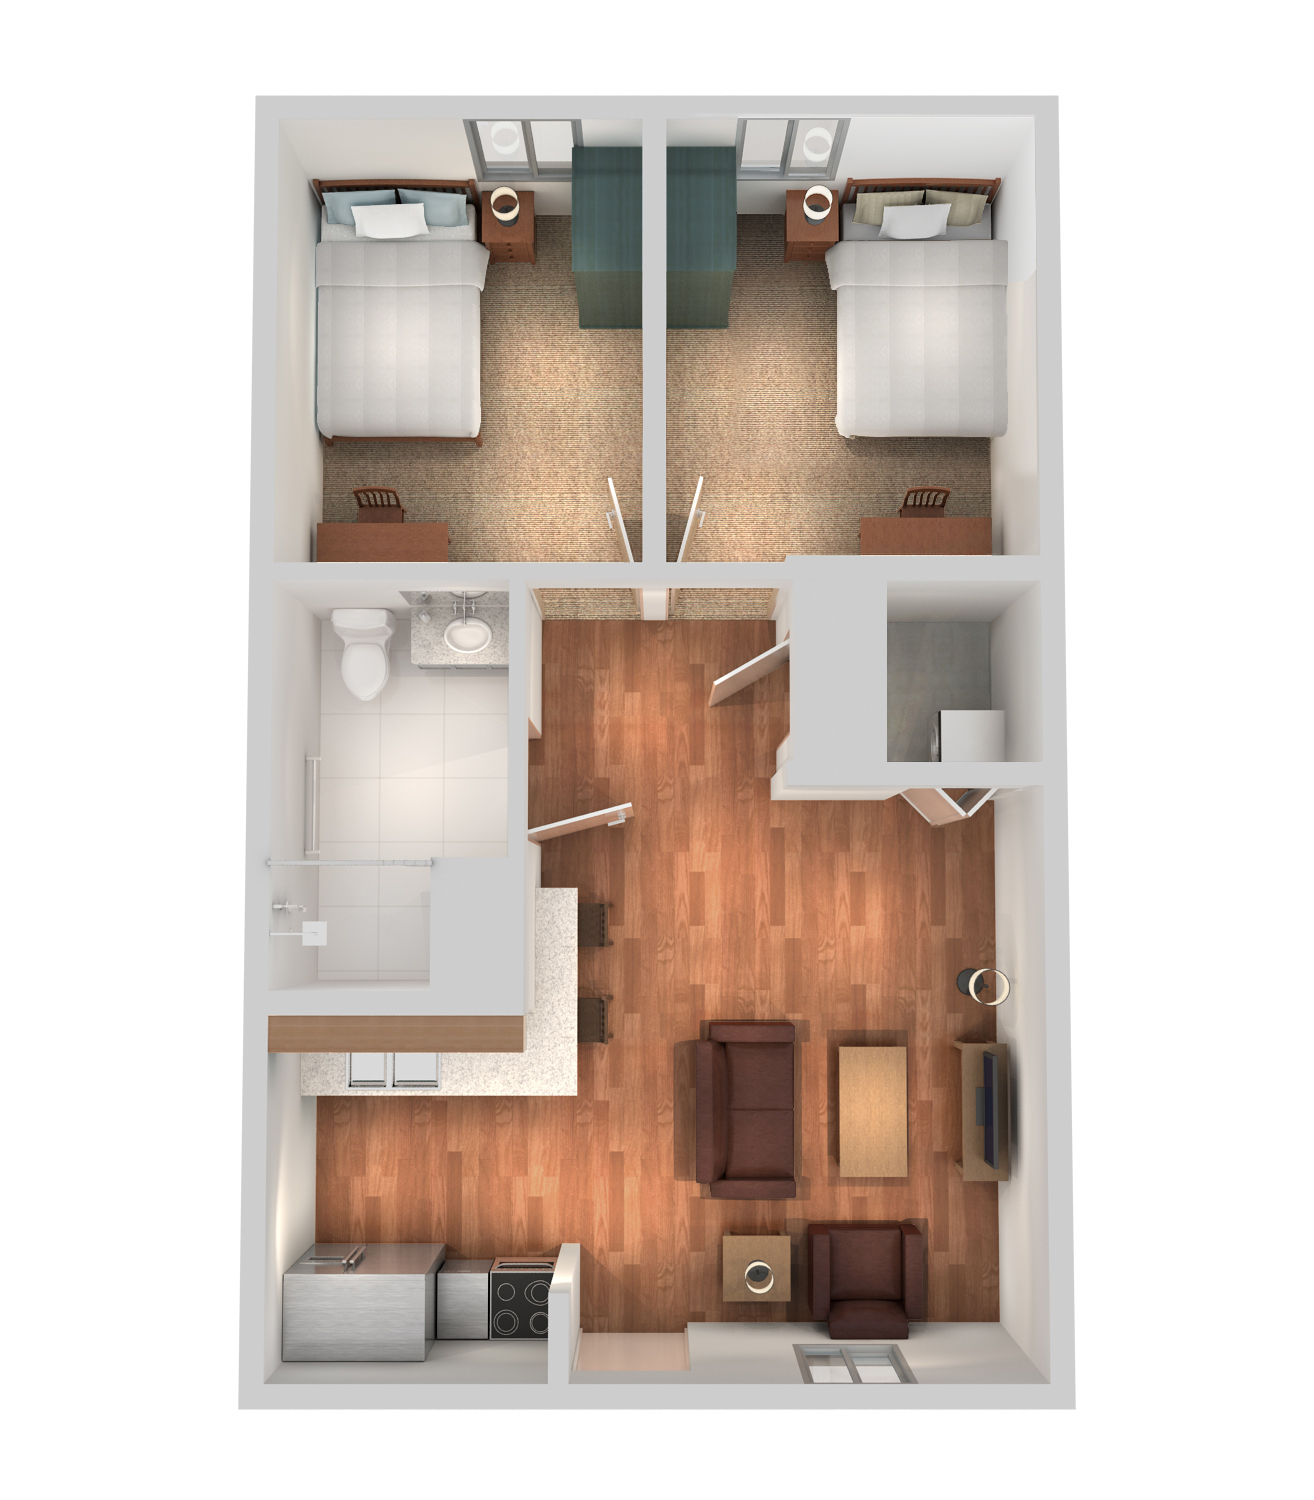 Apartments For Rent In South Carolina: Sterling Campus Center Apartments In Charleston, South